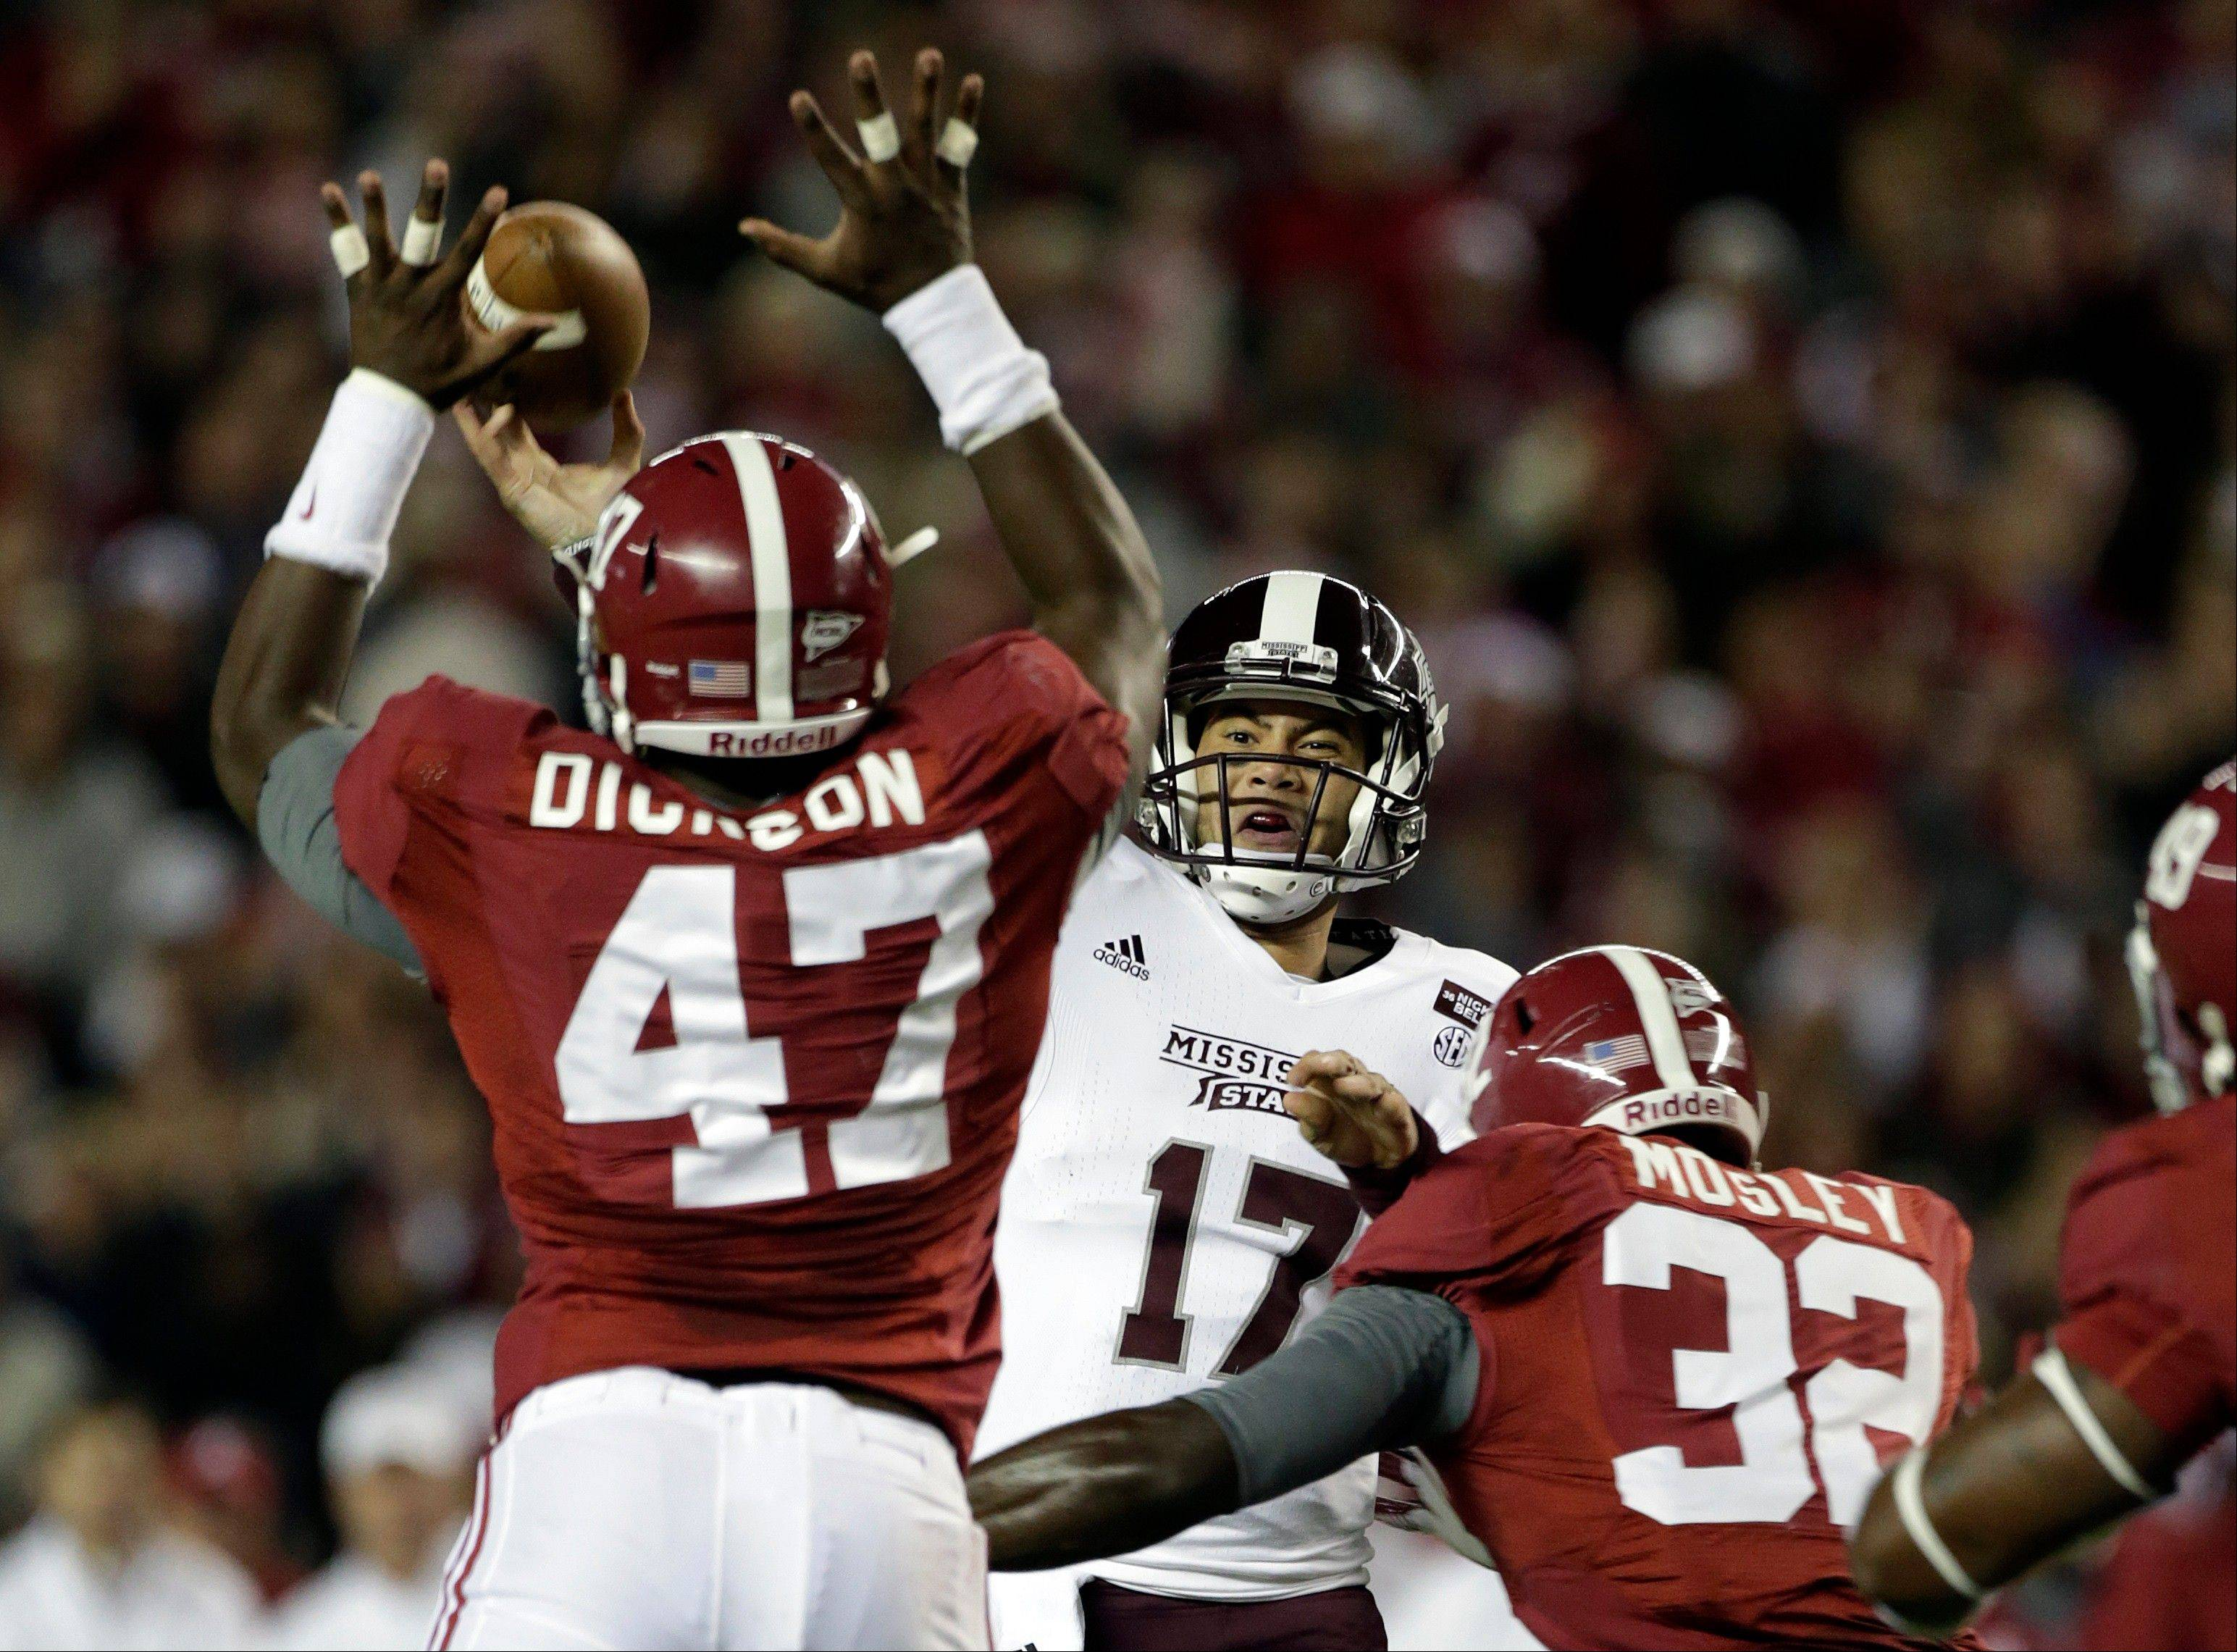 Mississippi State quarterback Tyler Russell (17) throws as he is rushed by Alabama linebacker Xzavier Dickson (47) and linebacker C.J. Mosley (32) Saturday during the first half at Bryant-Denny Stadium in Tuscaloosa, Ala.